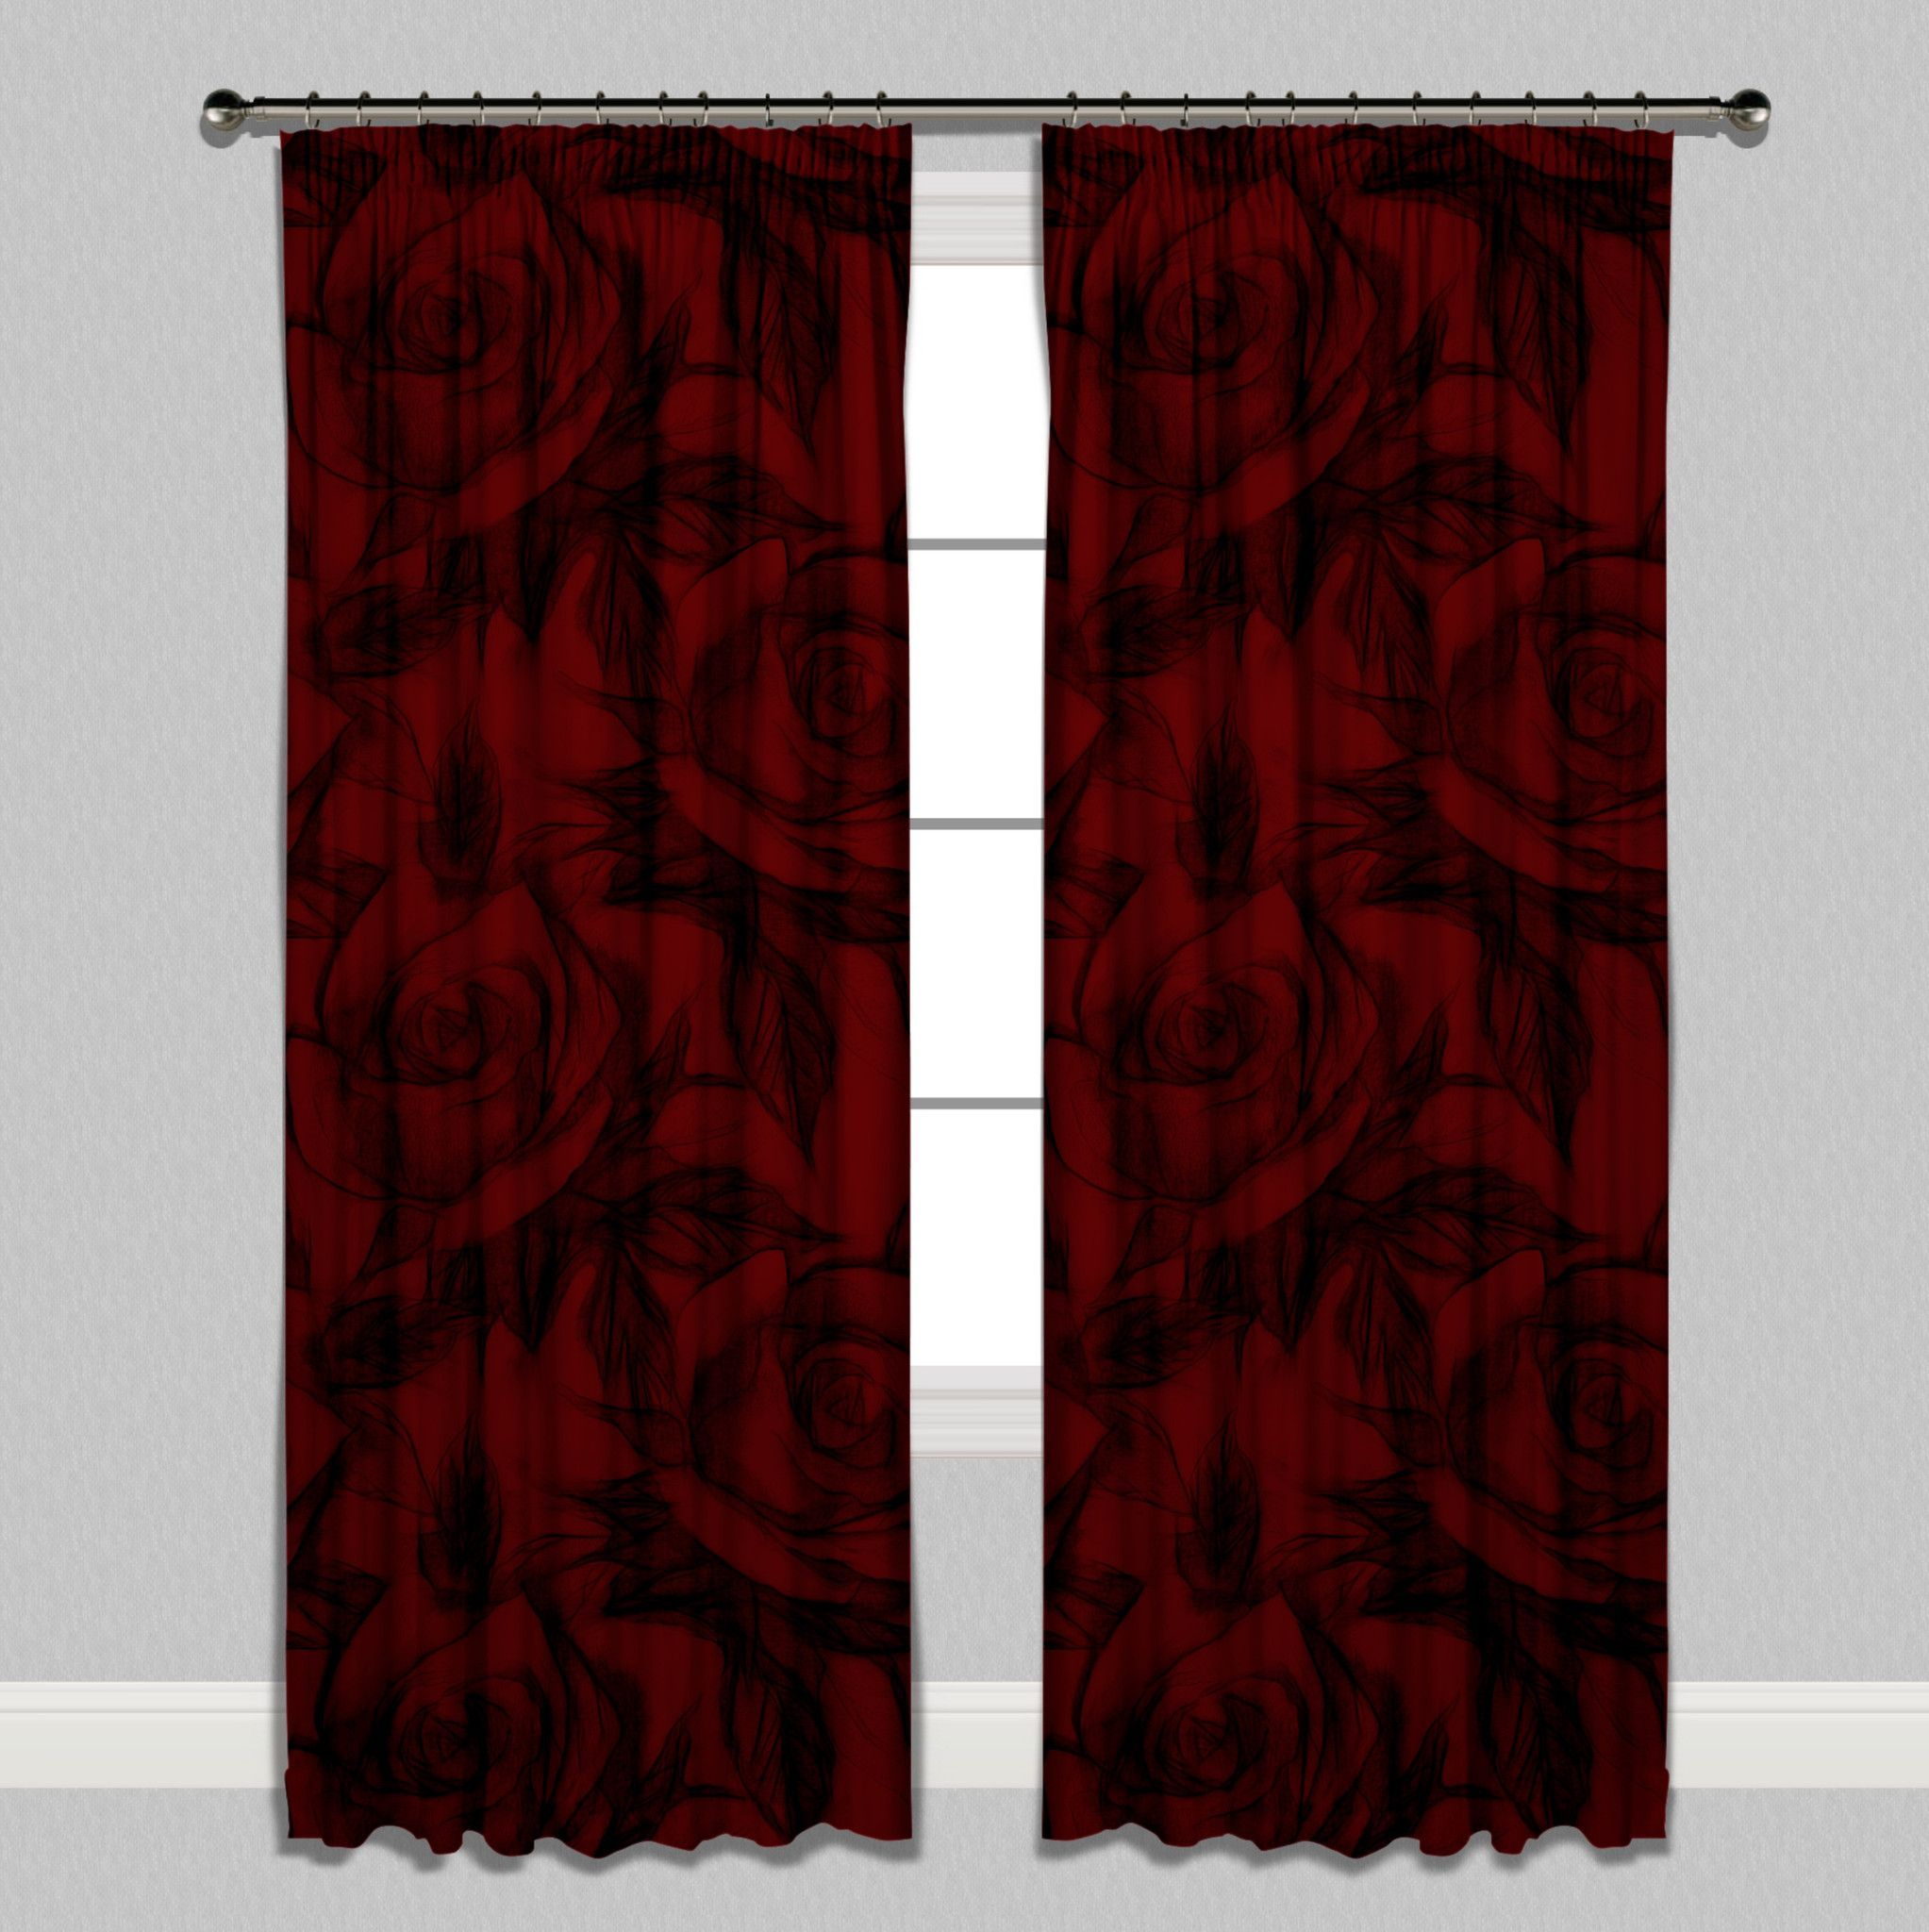 Red And Black Pencil Sketch Rose Curtains | Future Home In Intended For Luxury Collection Monte Carlo Sheer Curtain Panel Pairs (Gallery 19 of 20)